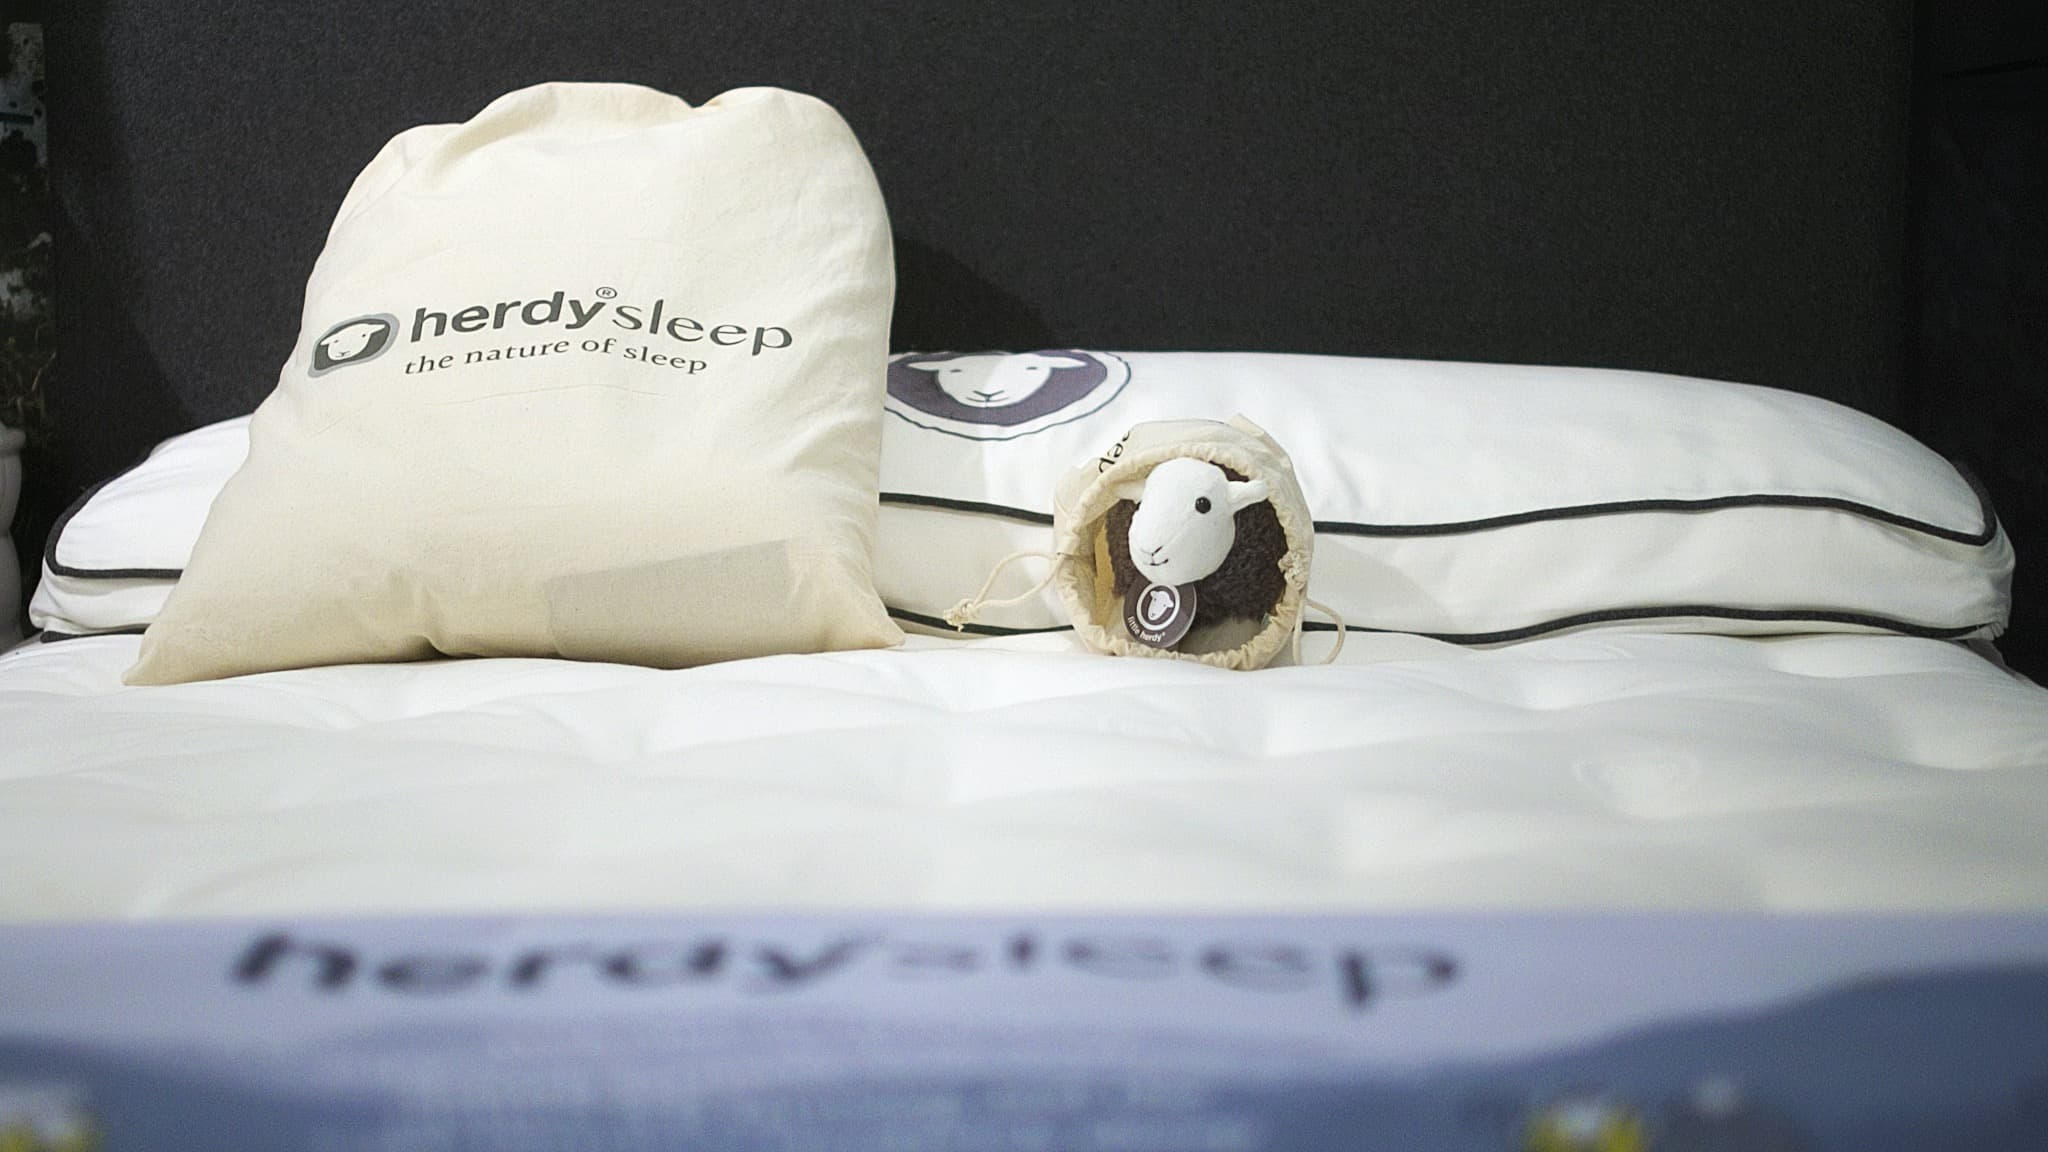 Little Herdy likes using a pillow cover as a sleeping bag on this Herdysleep mattress...